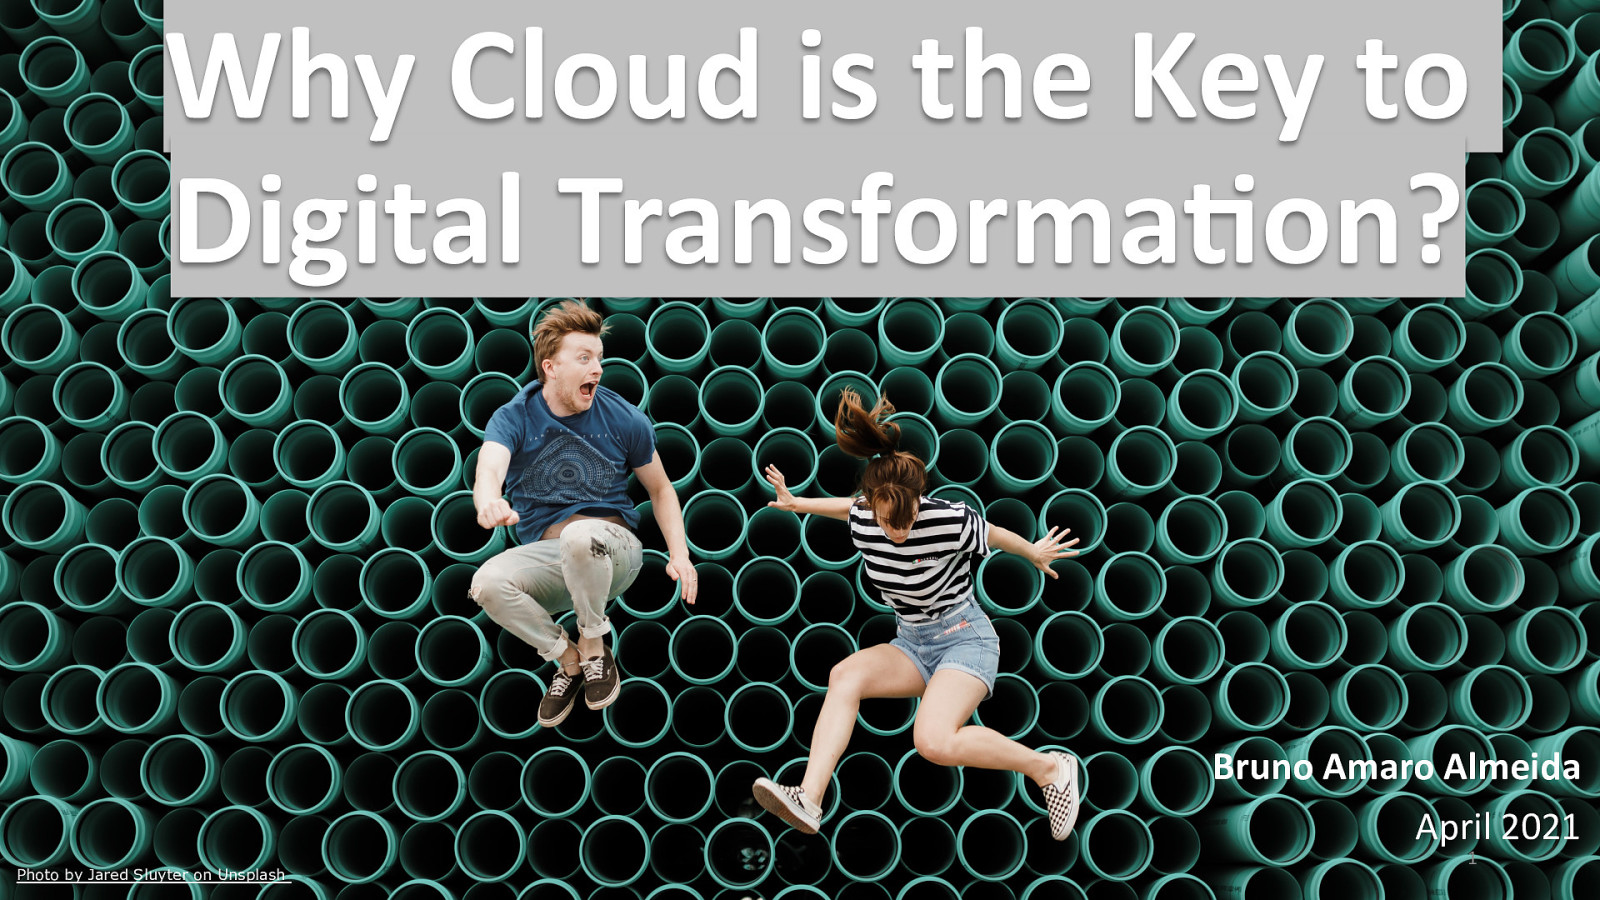 Why Cloud is the key to Digital Transformation?